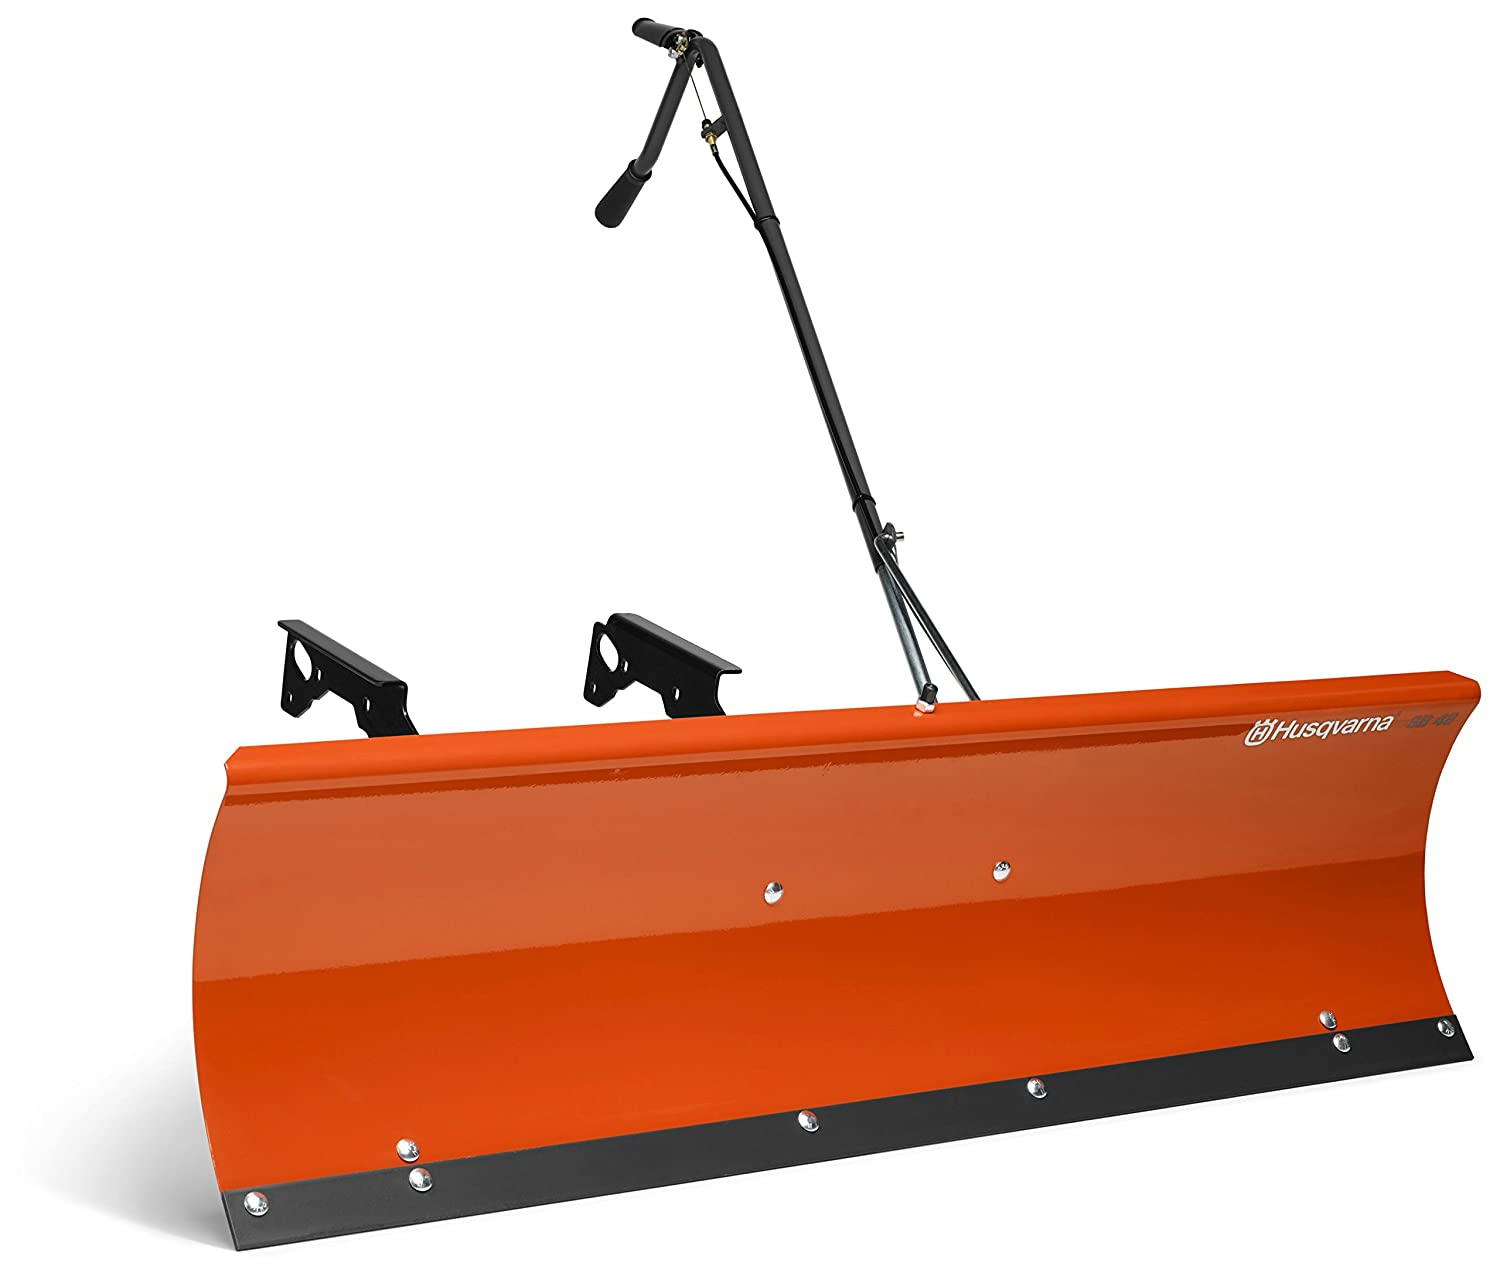 The Best 5 Snow Plow | Reviews & Buying Guide 5